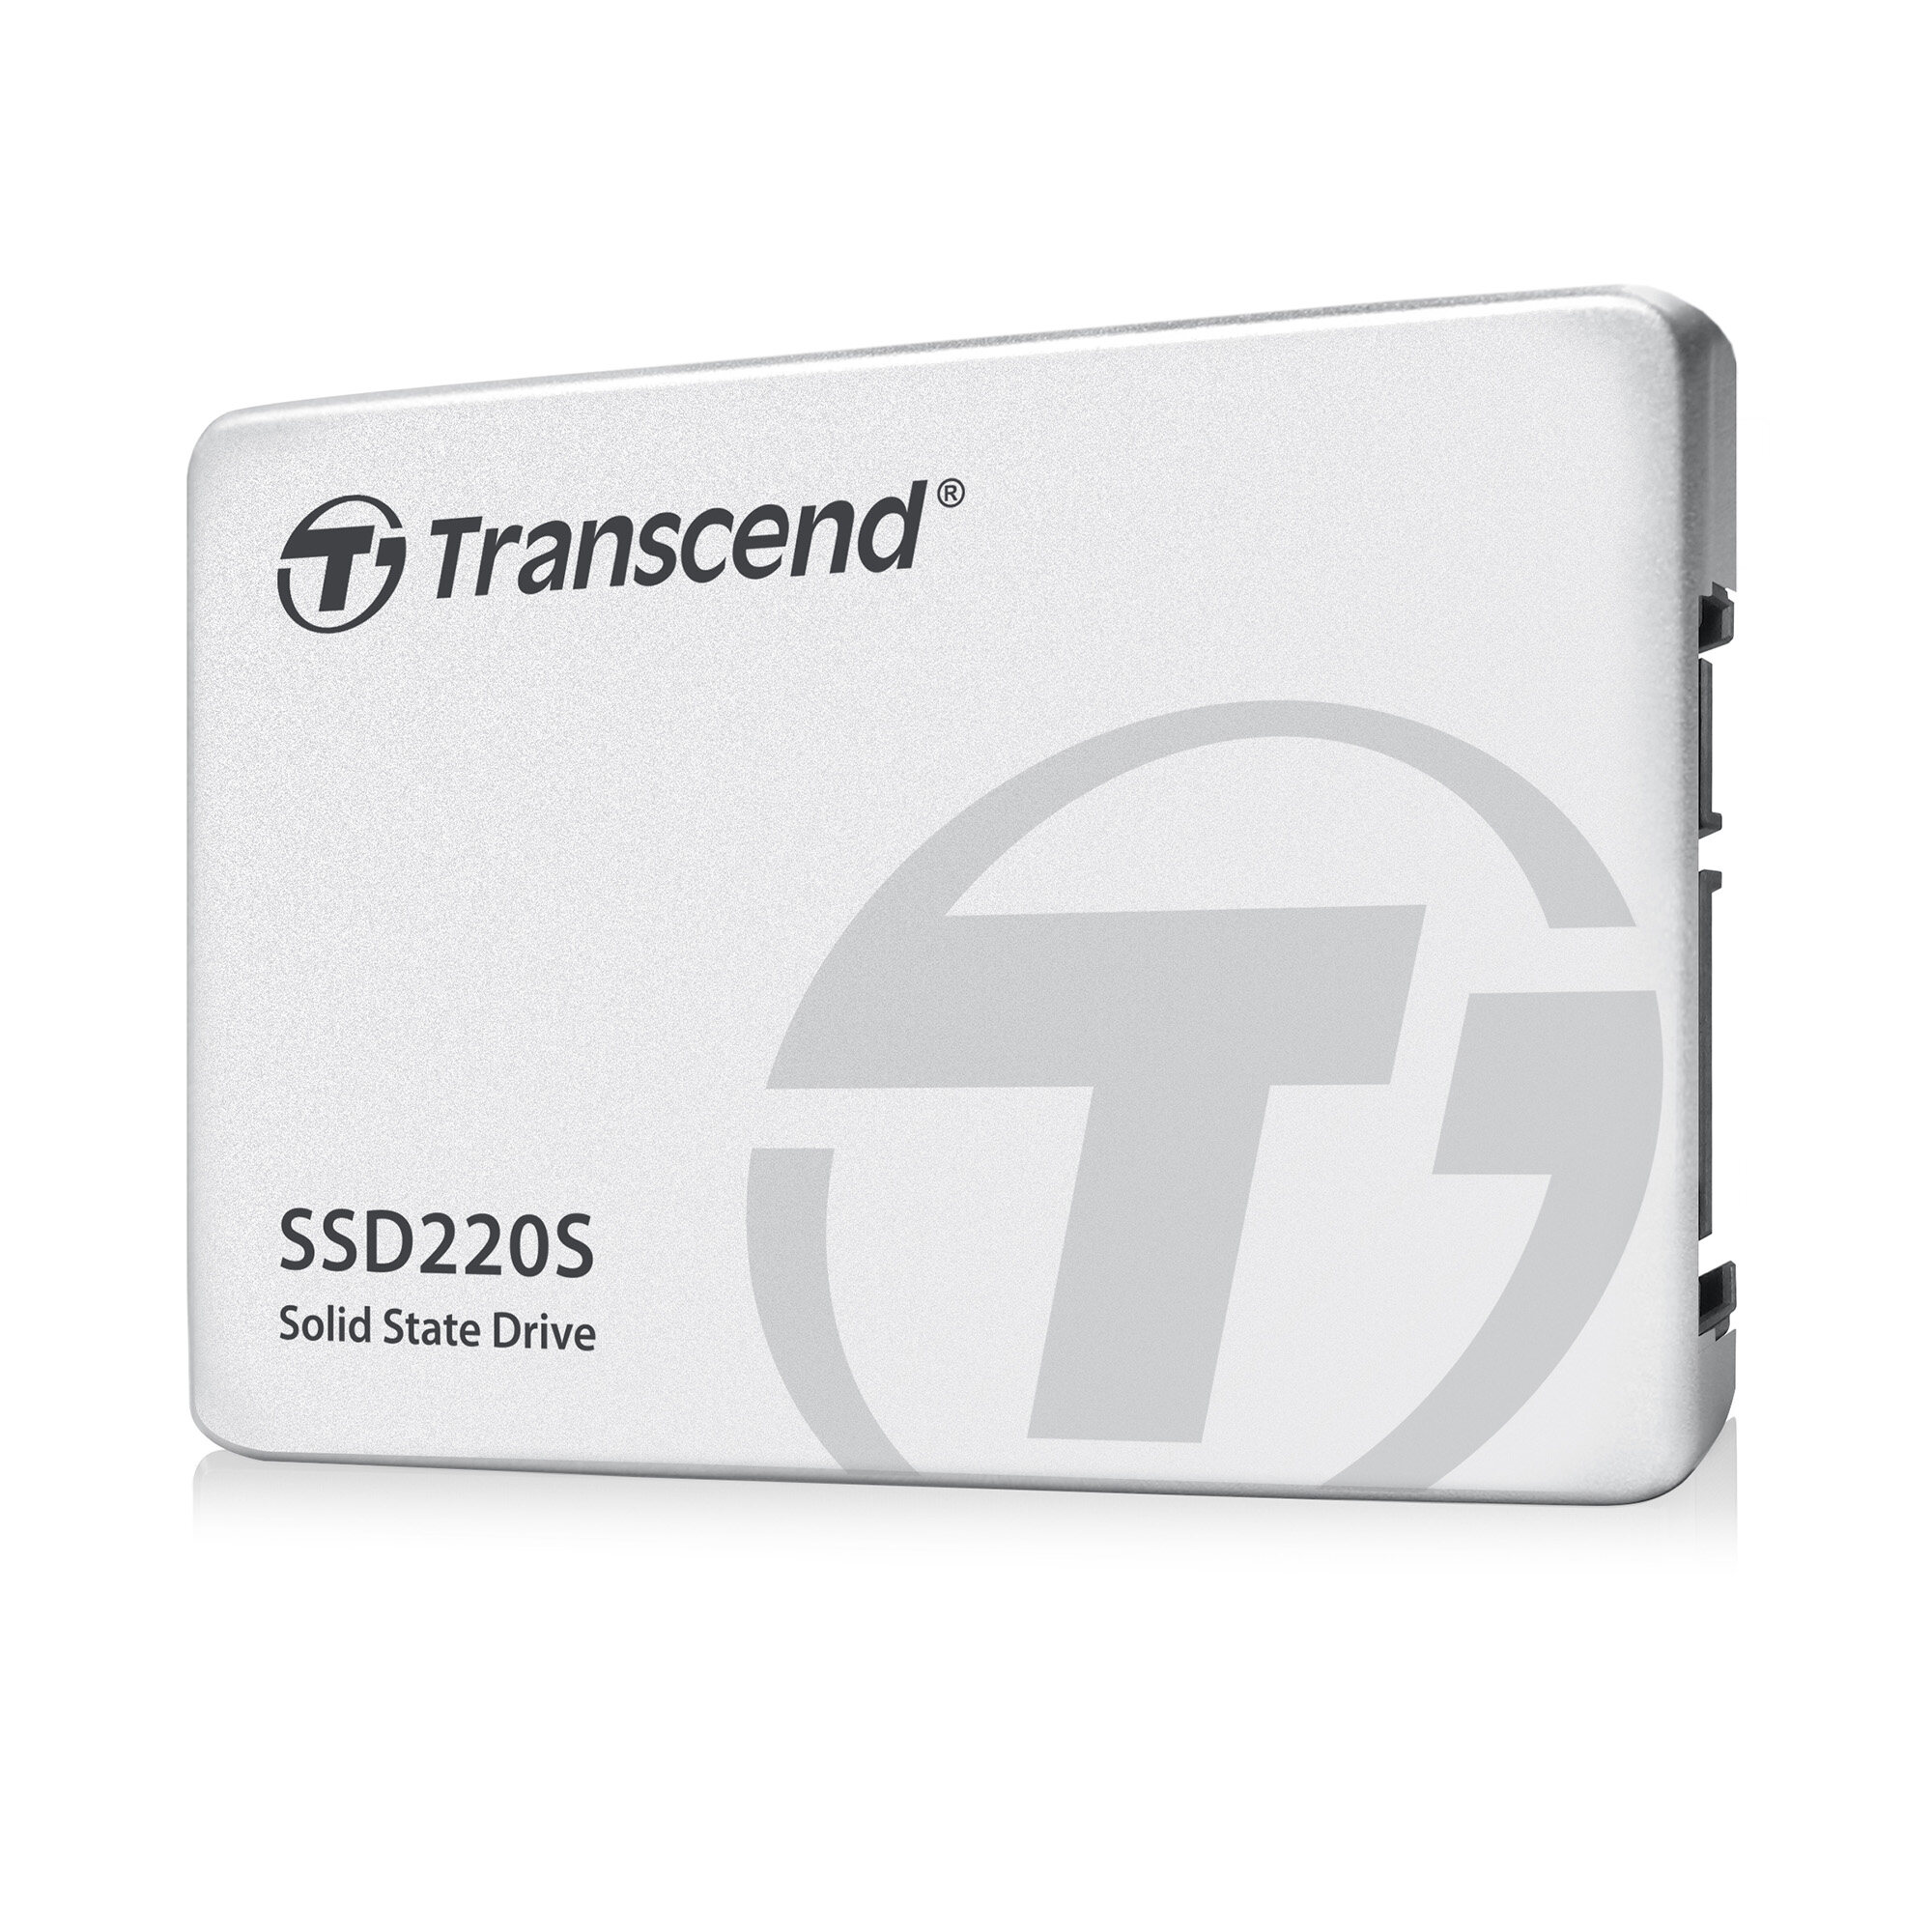 Transcend 220S 2.5 SATA 3 SSD Internal SSD, Available Capacity 120GB/ 240GB/ 480GB/ 960GB